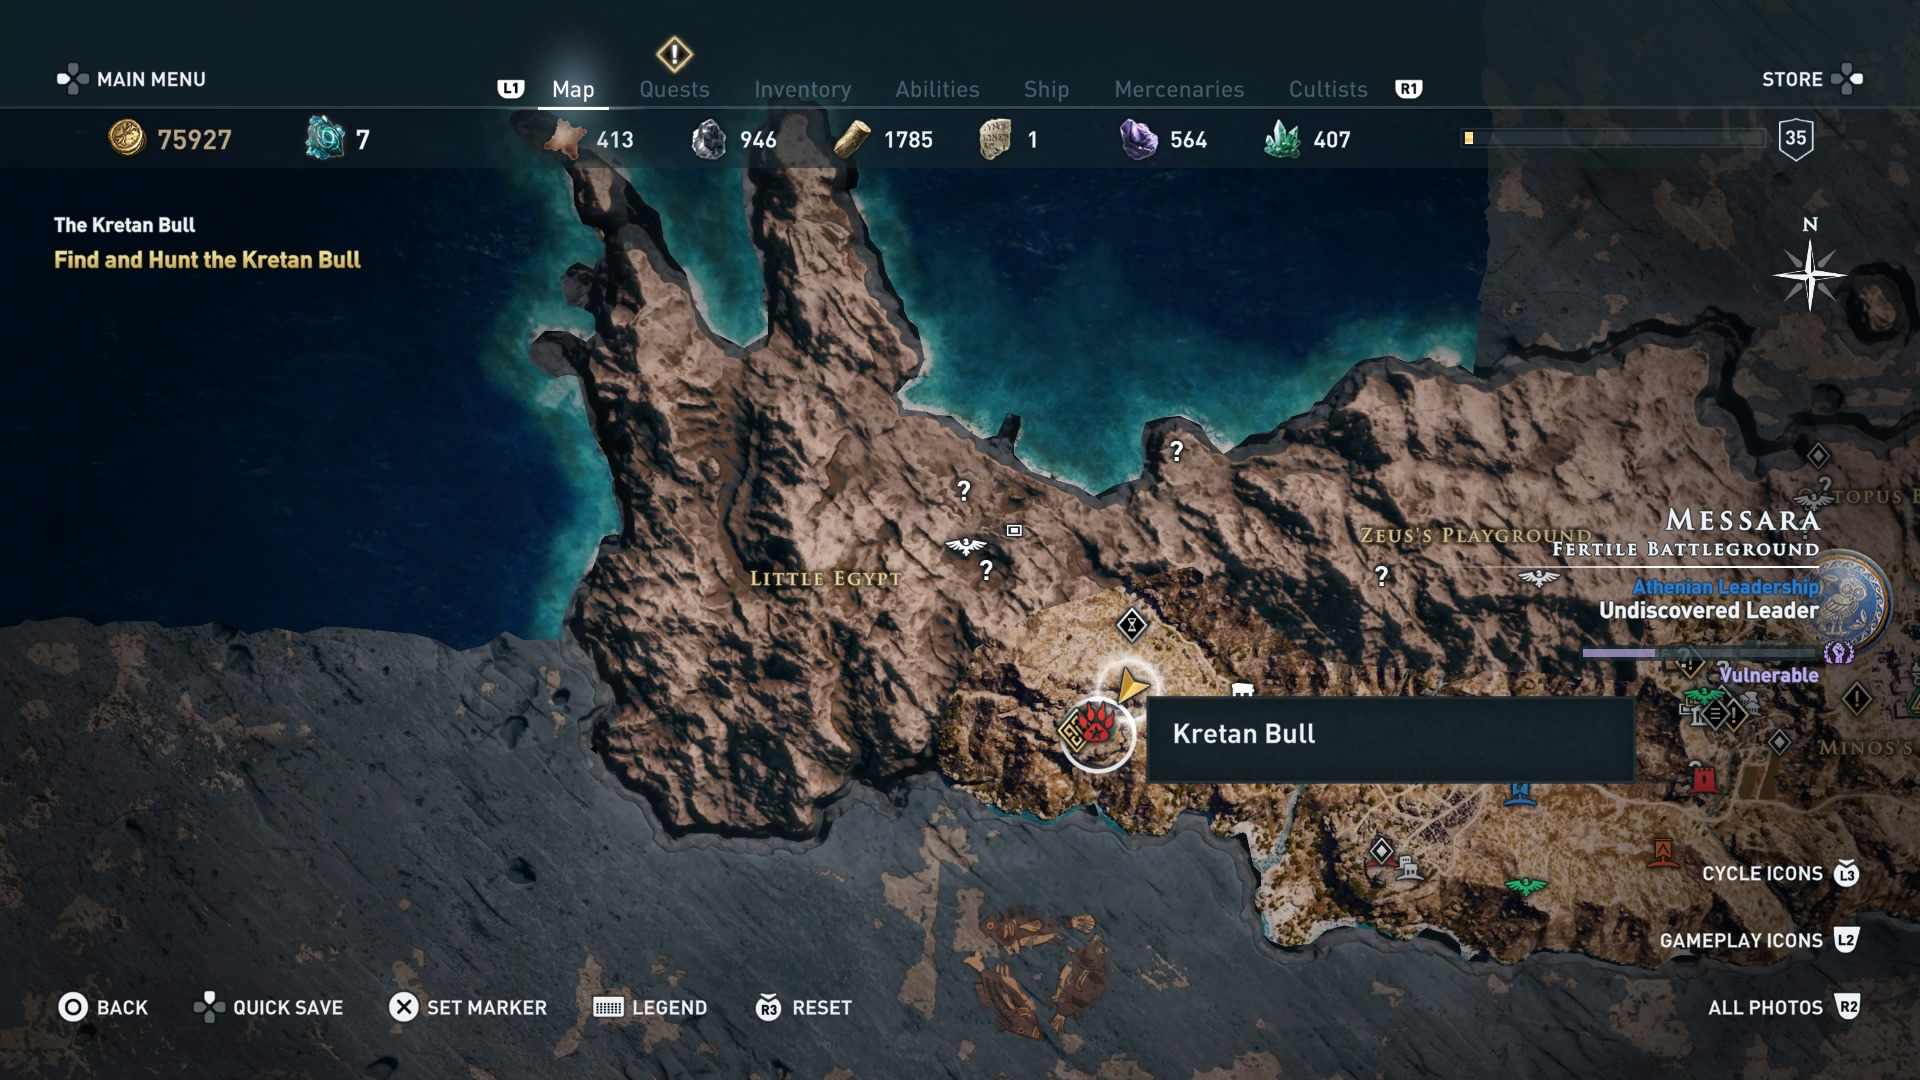 Assassin's Creed Odyssey: The Kretan Bull location